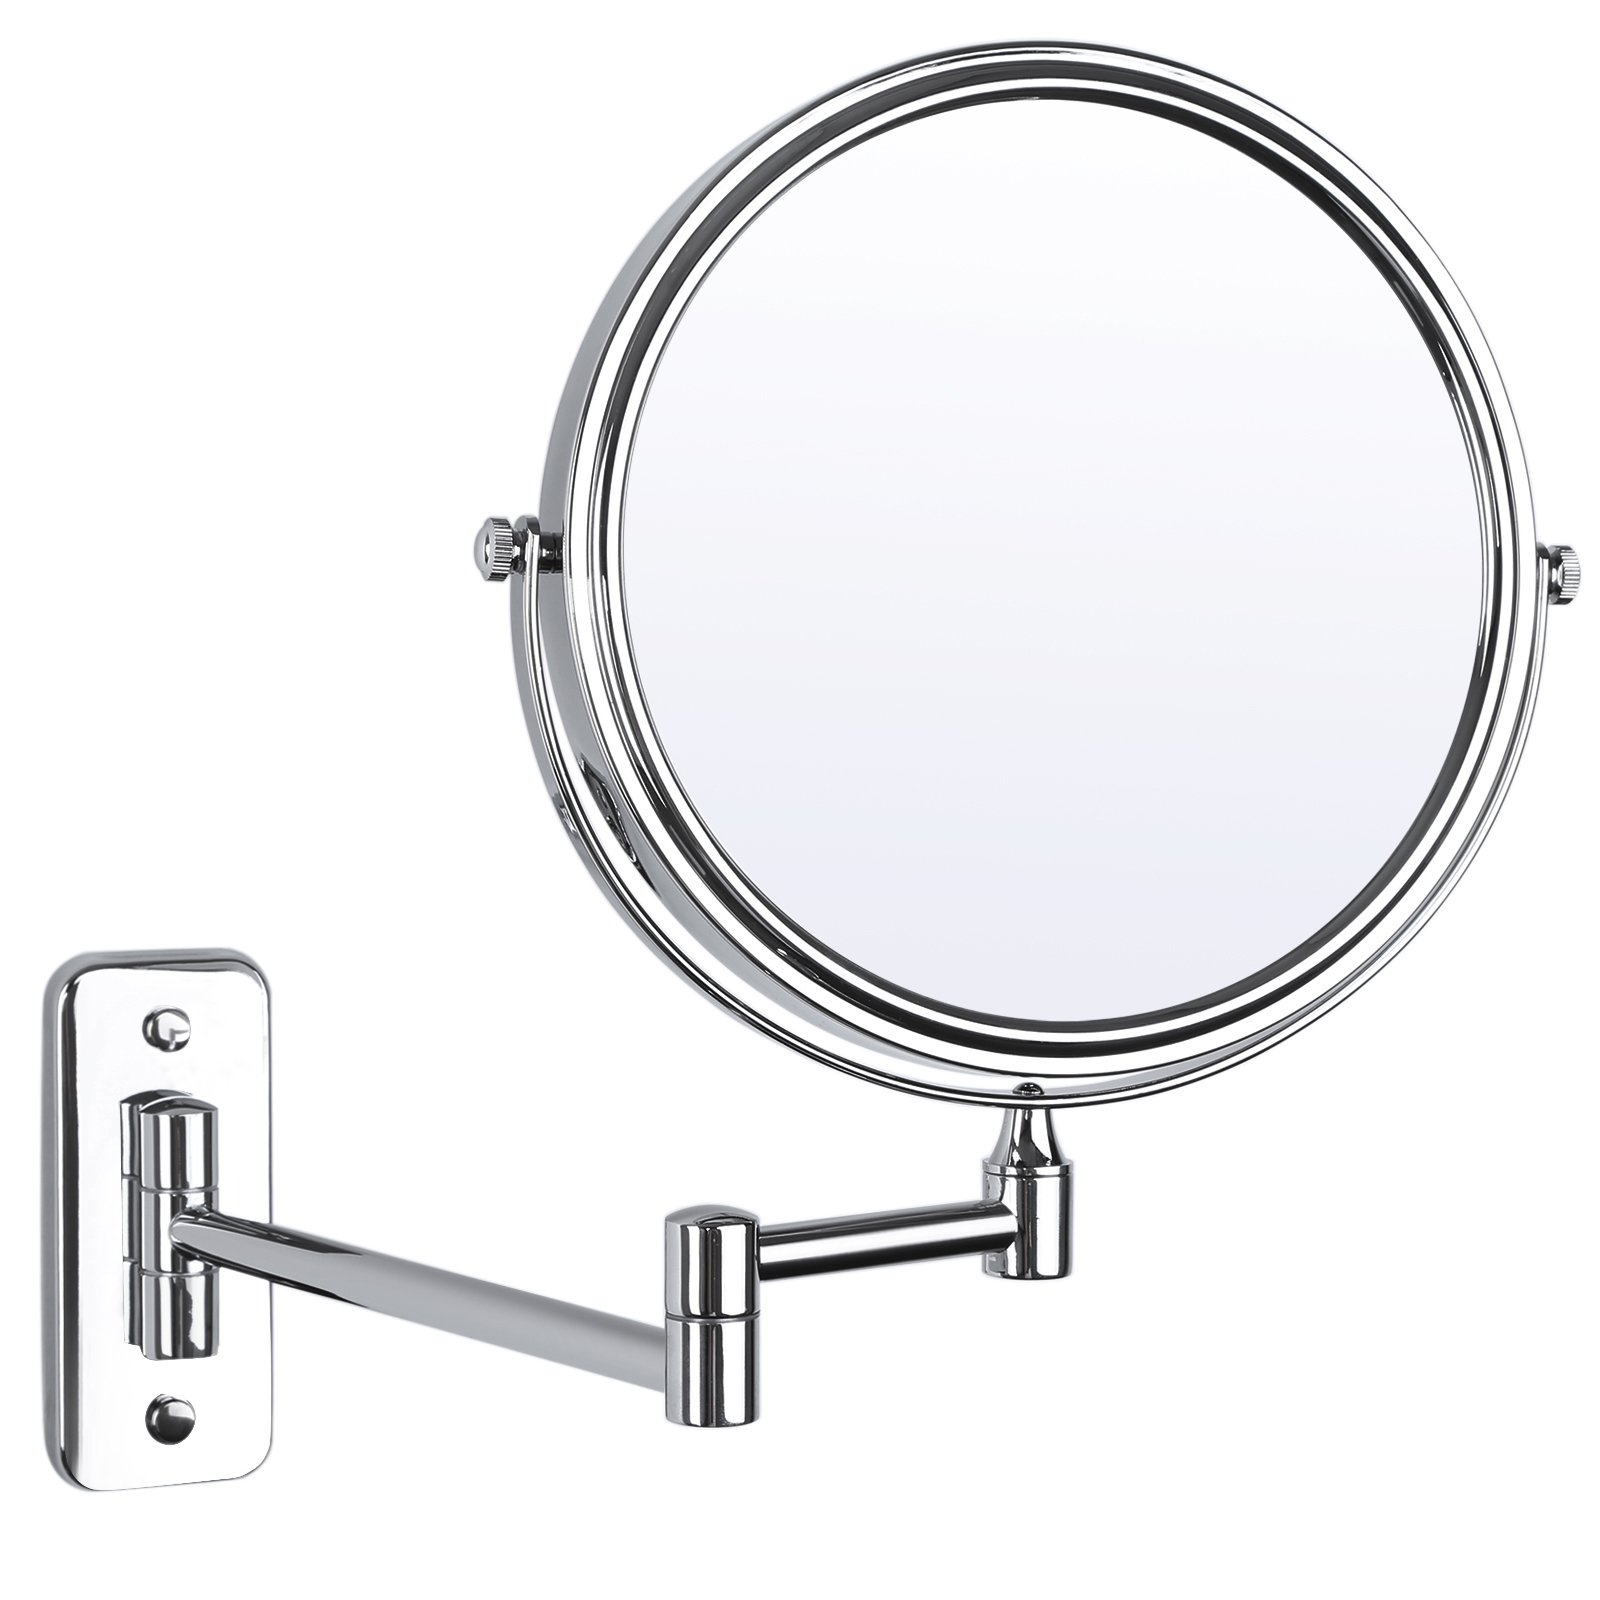 SONGMICS 8'' Two-Sided Wall Mount Makeup Mirror 360° Swivel Extendable 7x Cosmetic Mirror UBBM713 by SONGMICS